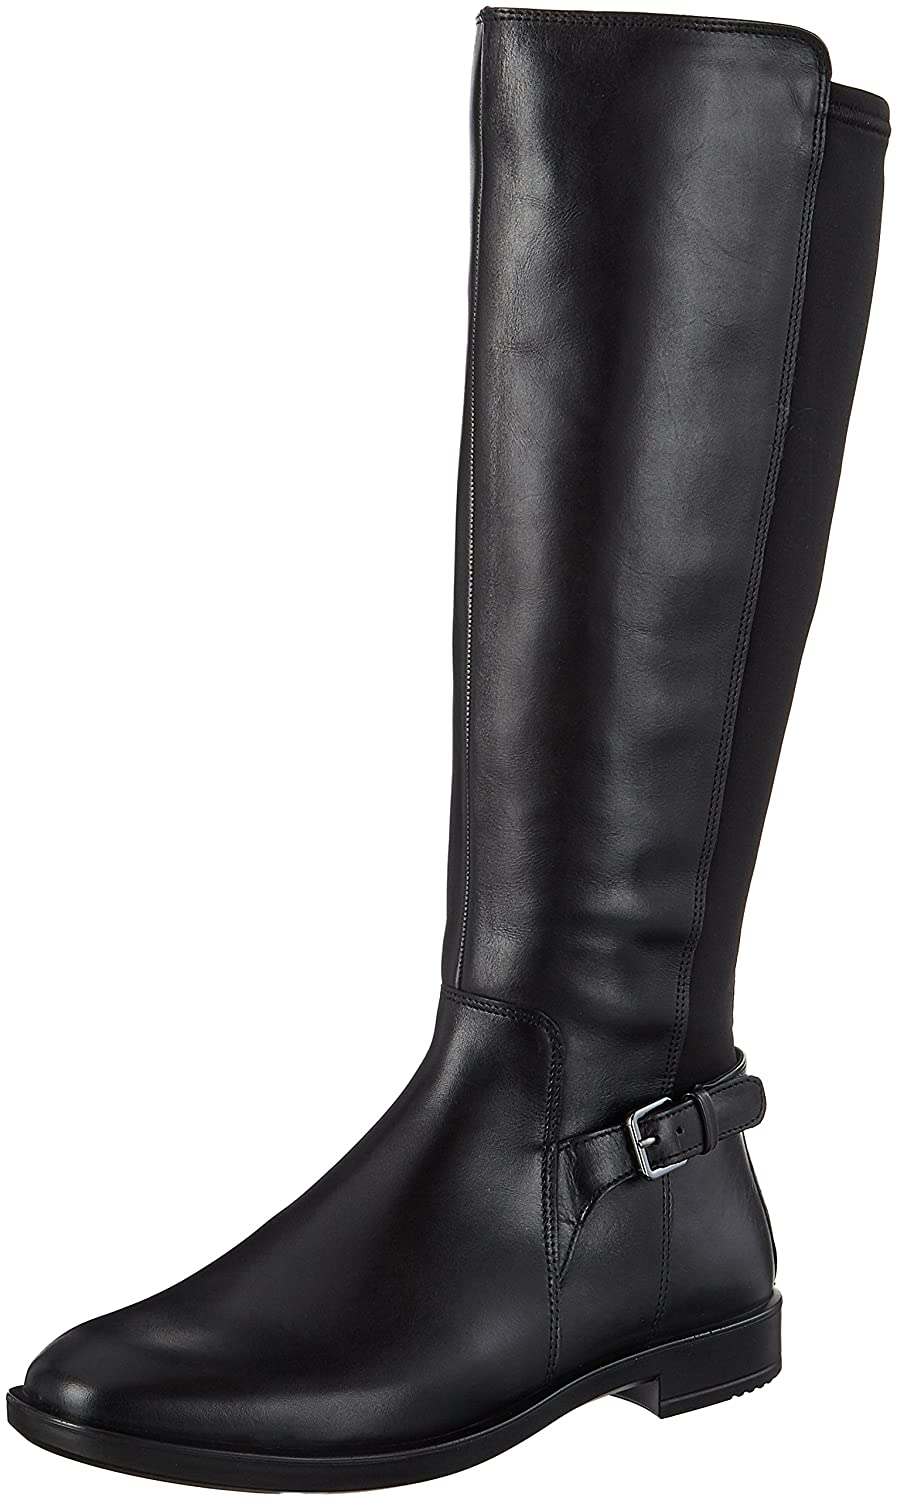 ECCO Shoes Women's Shape M 15 Tall Fashion Boots ECCO Women' s 272033